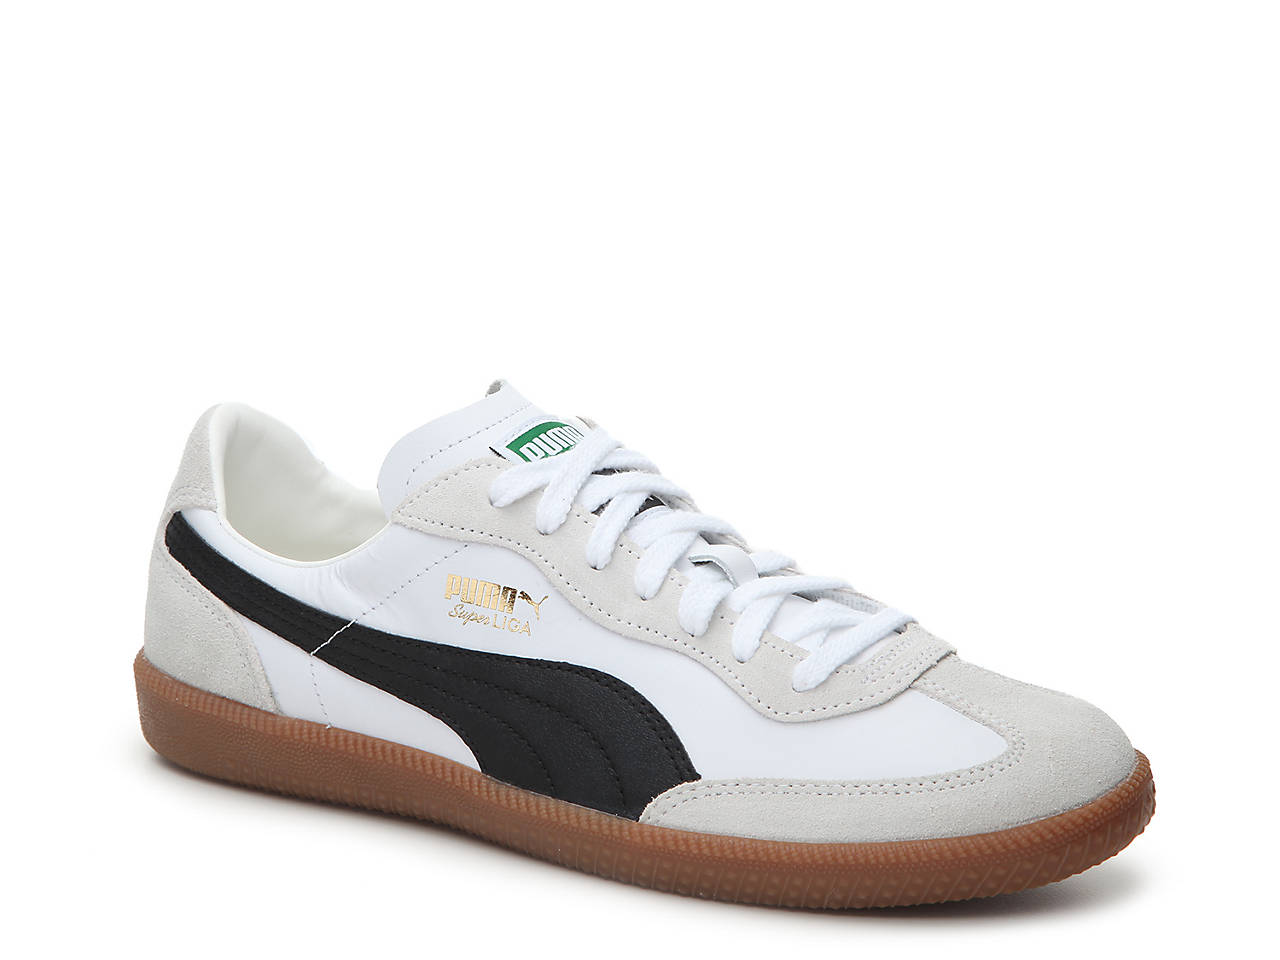 purchase cheap 2a530 ee7c5 Super Liga OG Retro Sneaker - Men's